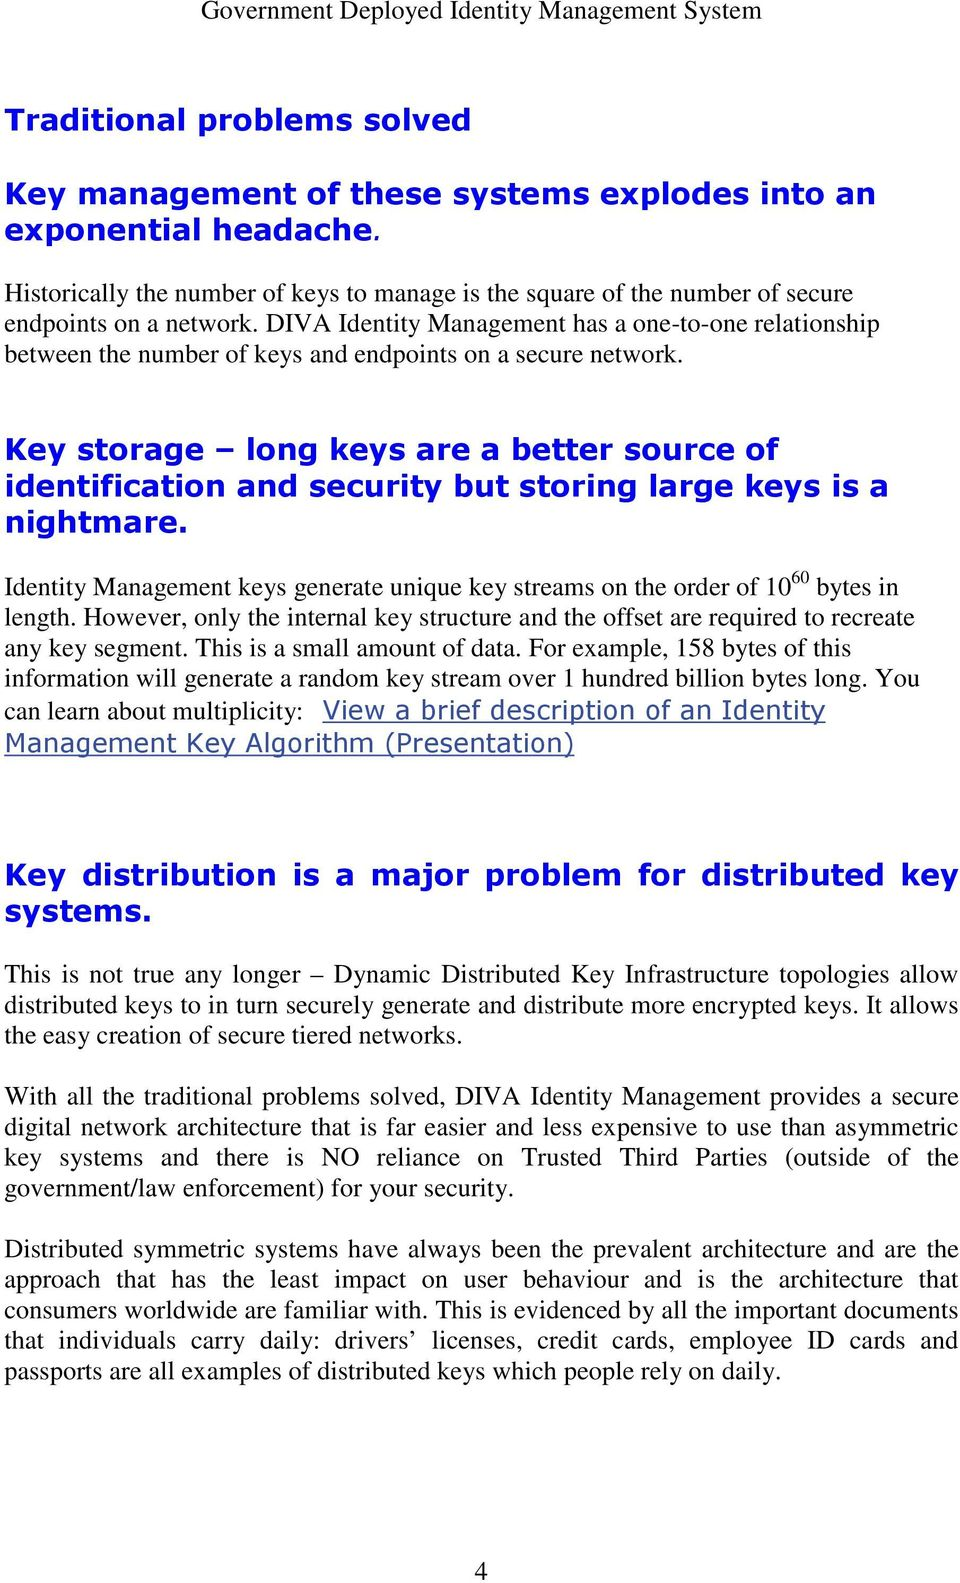 DIVA Identity Management has a one-to-one relationship between the number of keys and endpoints on a secure network.